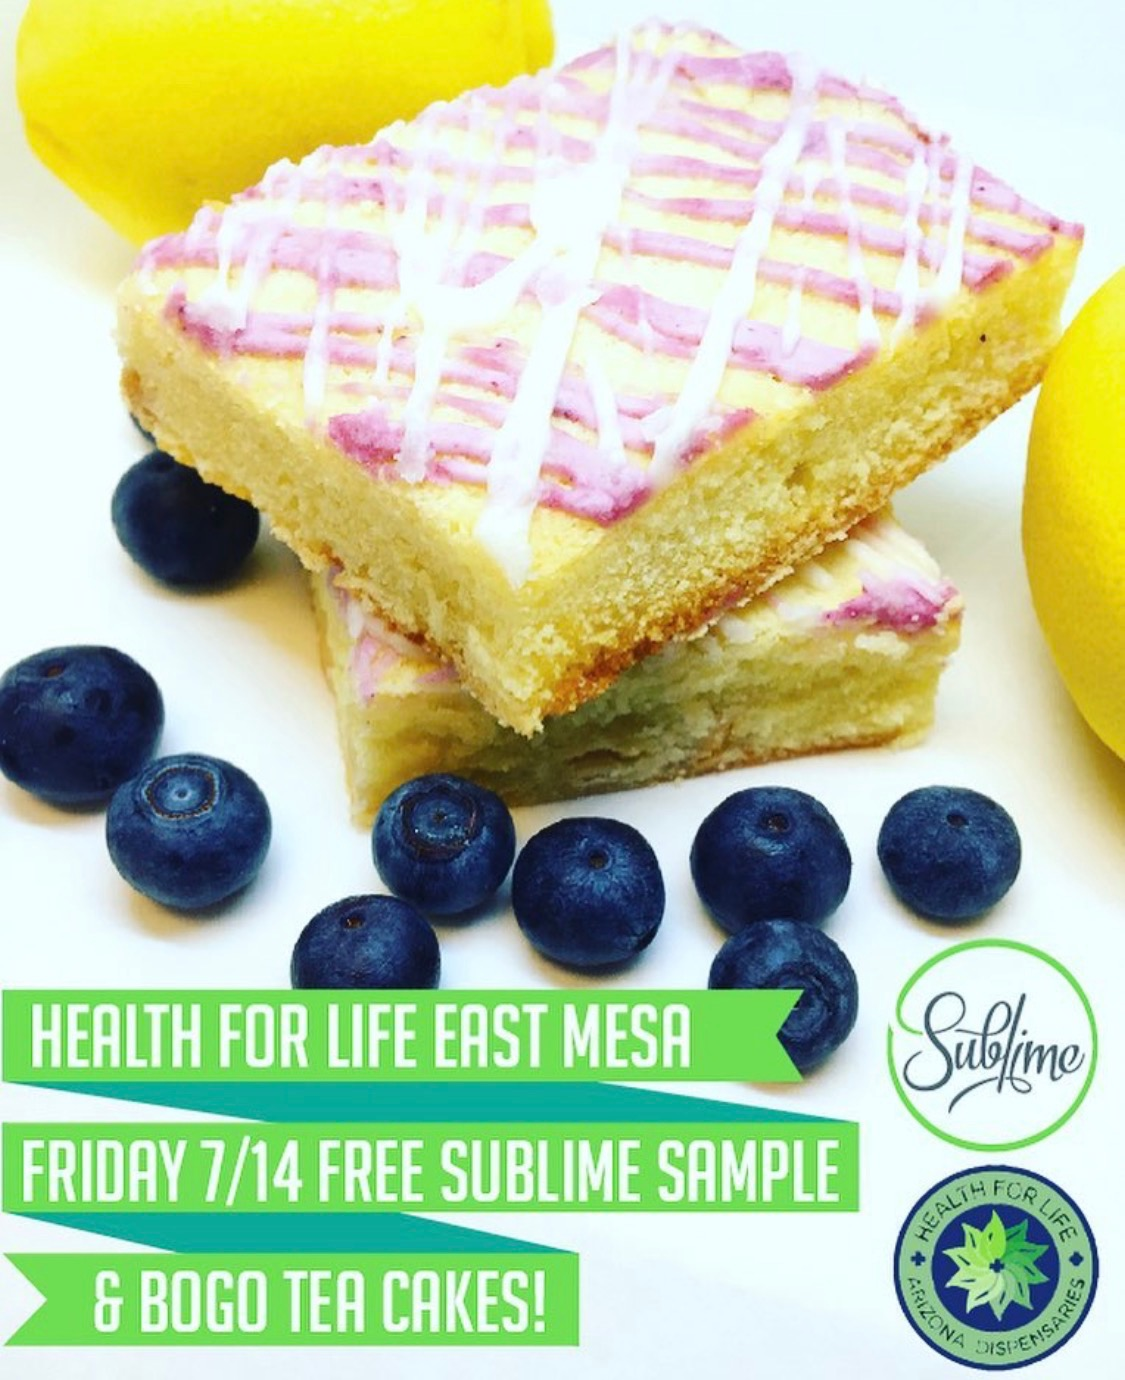 sublime patient appreciation day at health for life east mesa